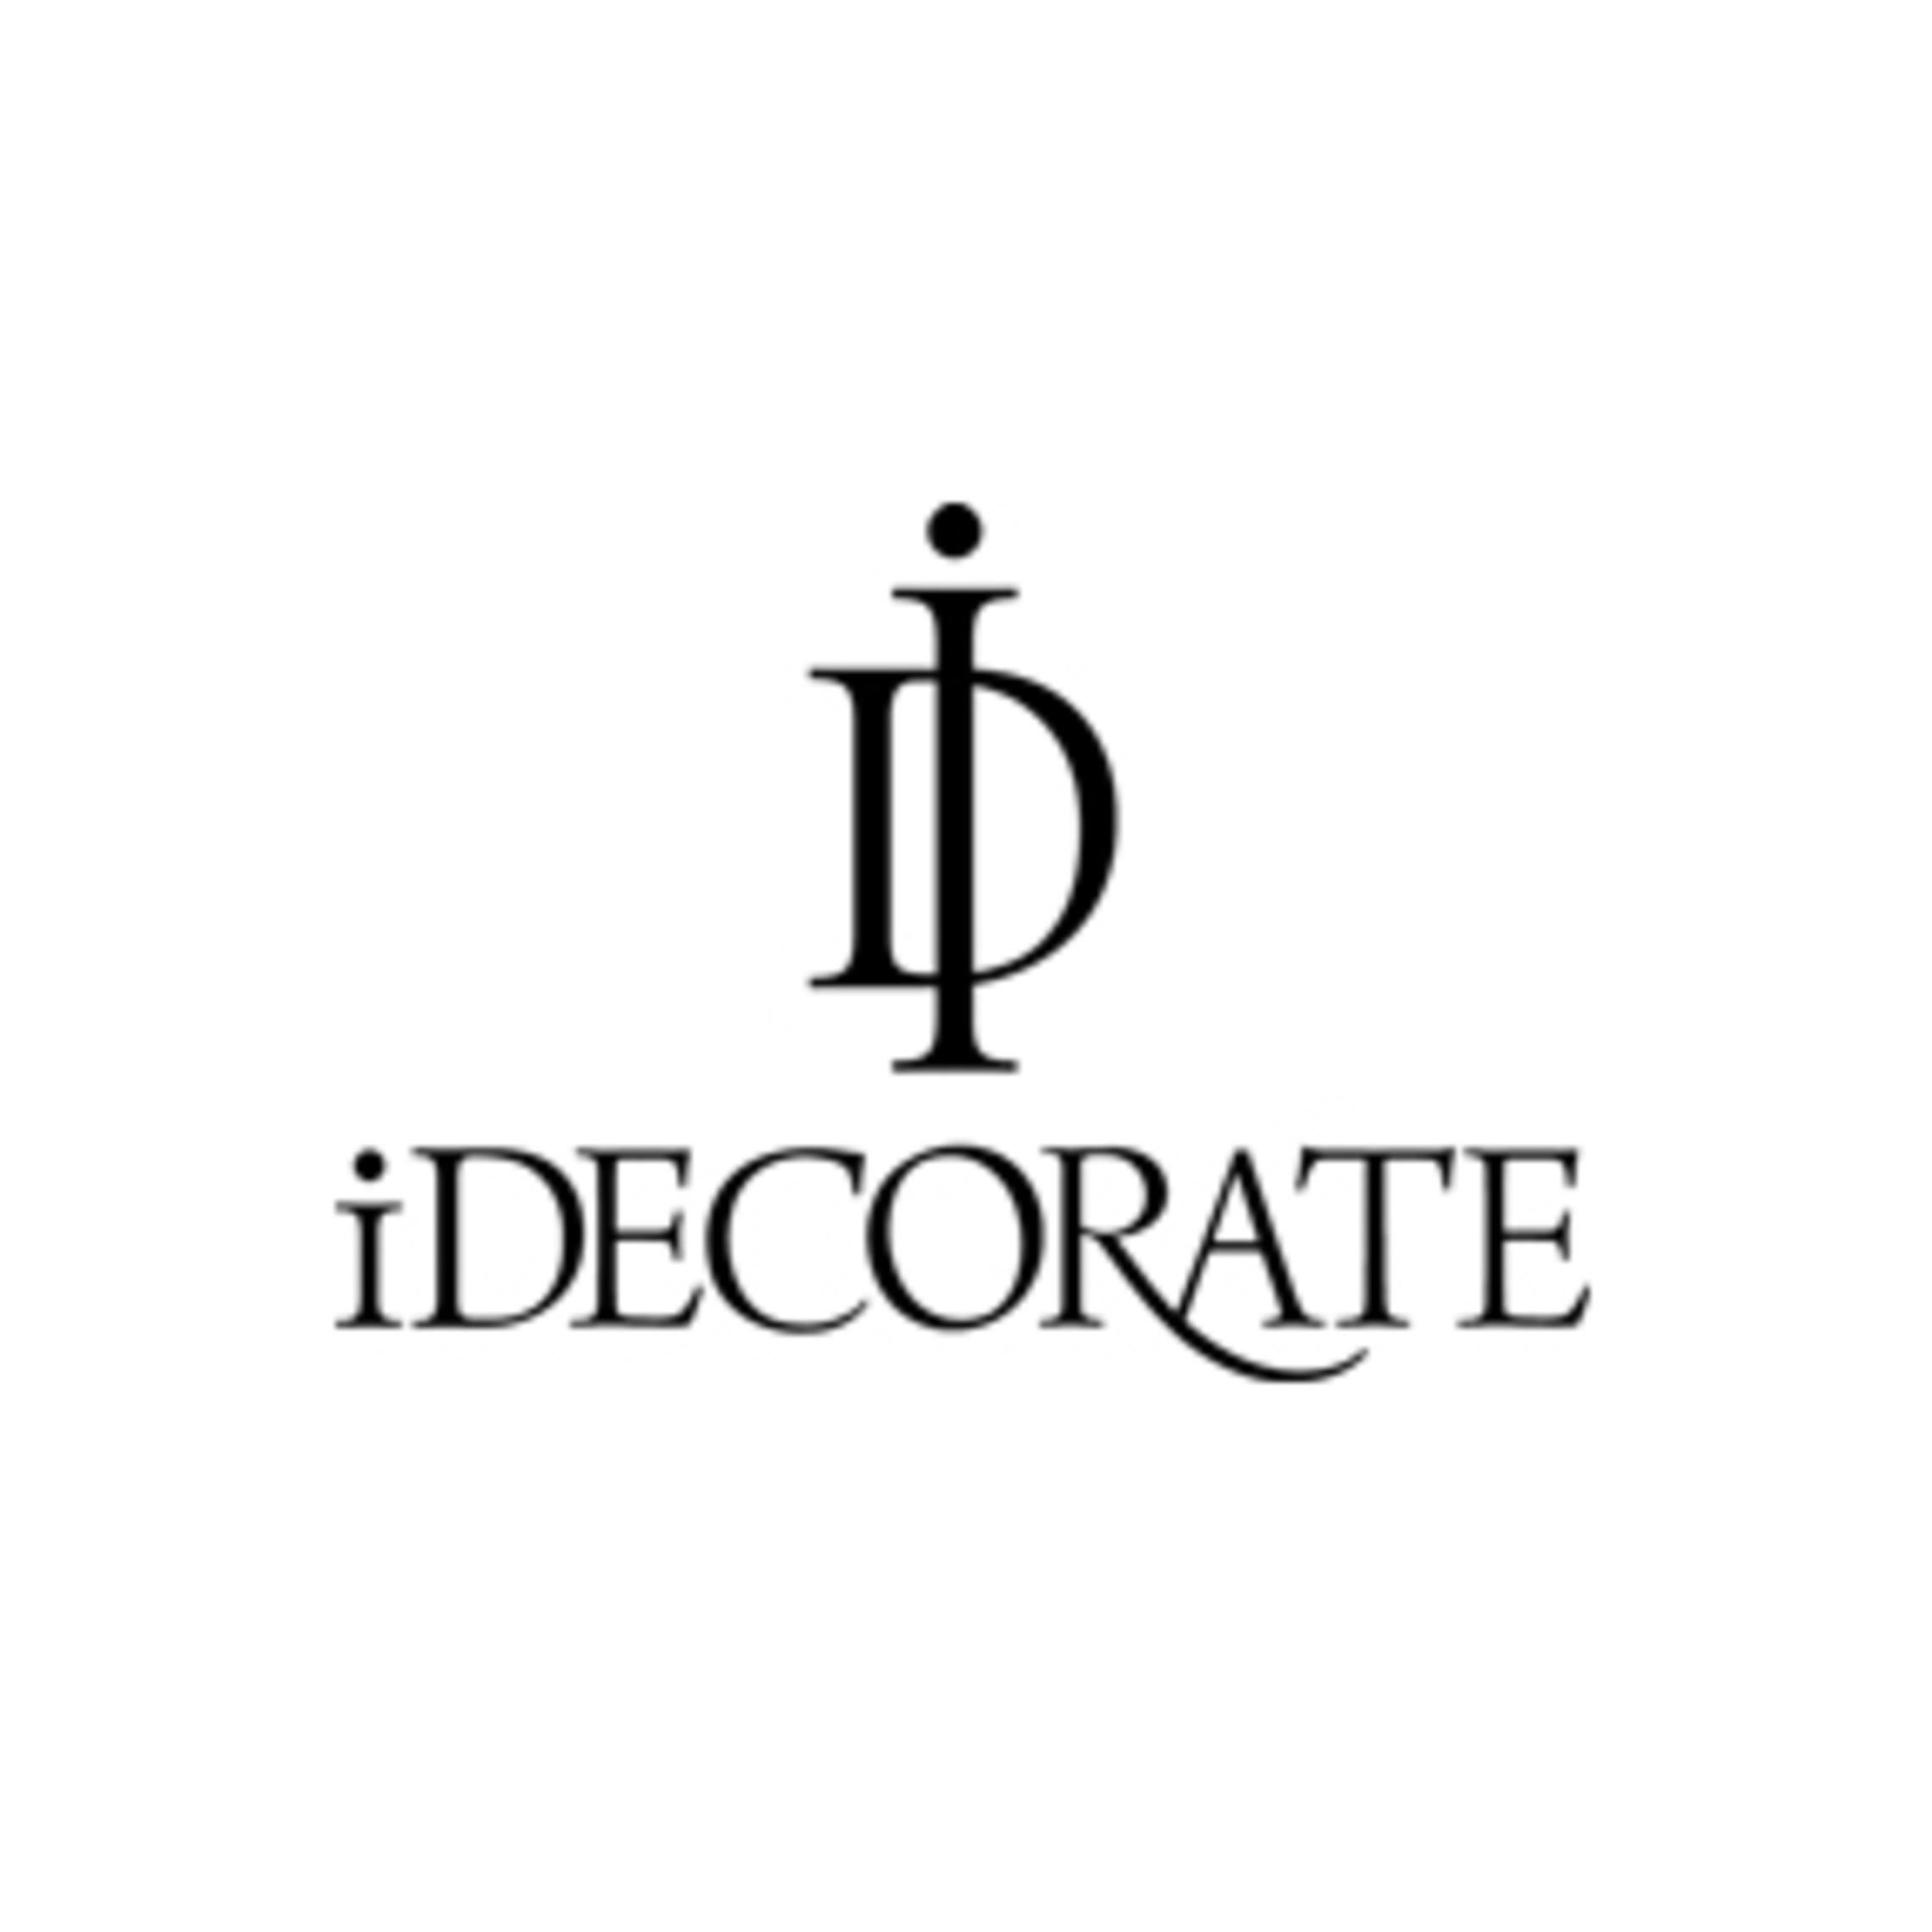 idecorate- company logo